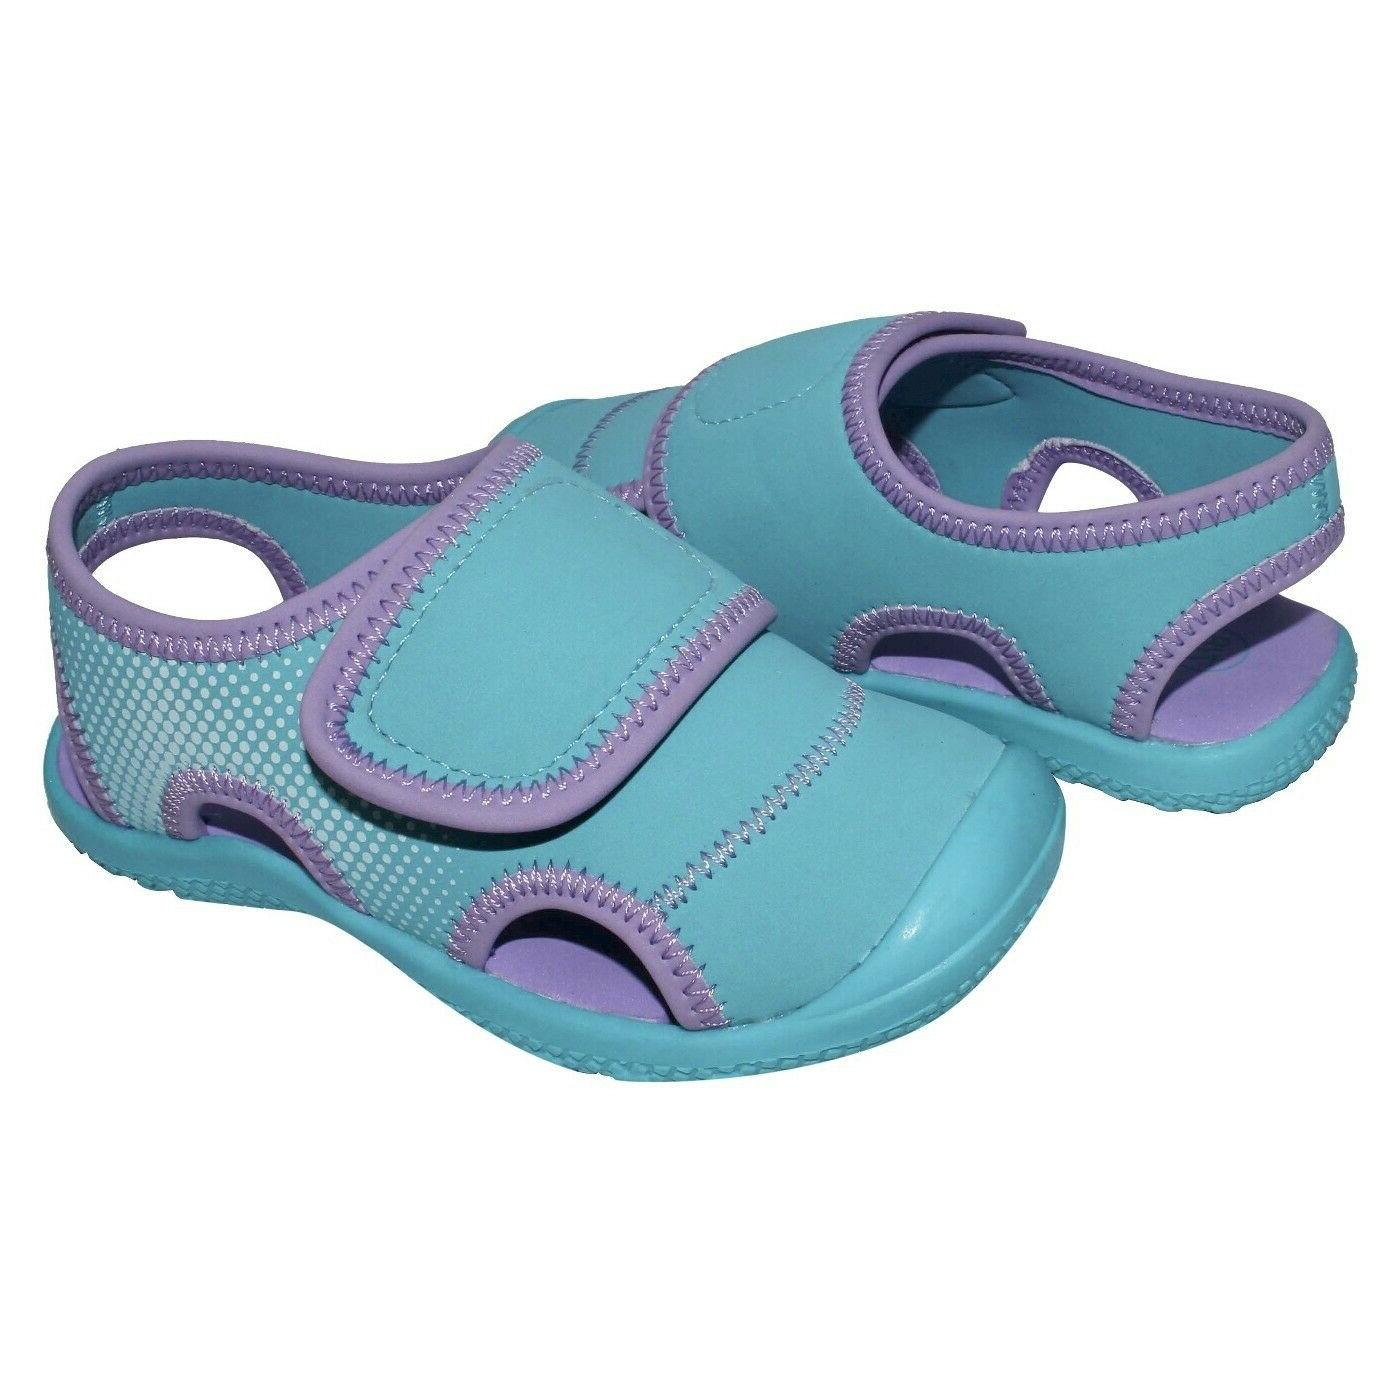 Cat & Toddler Girls Turquoise/Purple Water Shoes Fisherman Sandals -